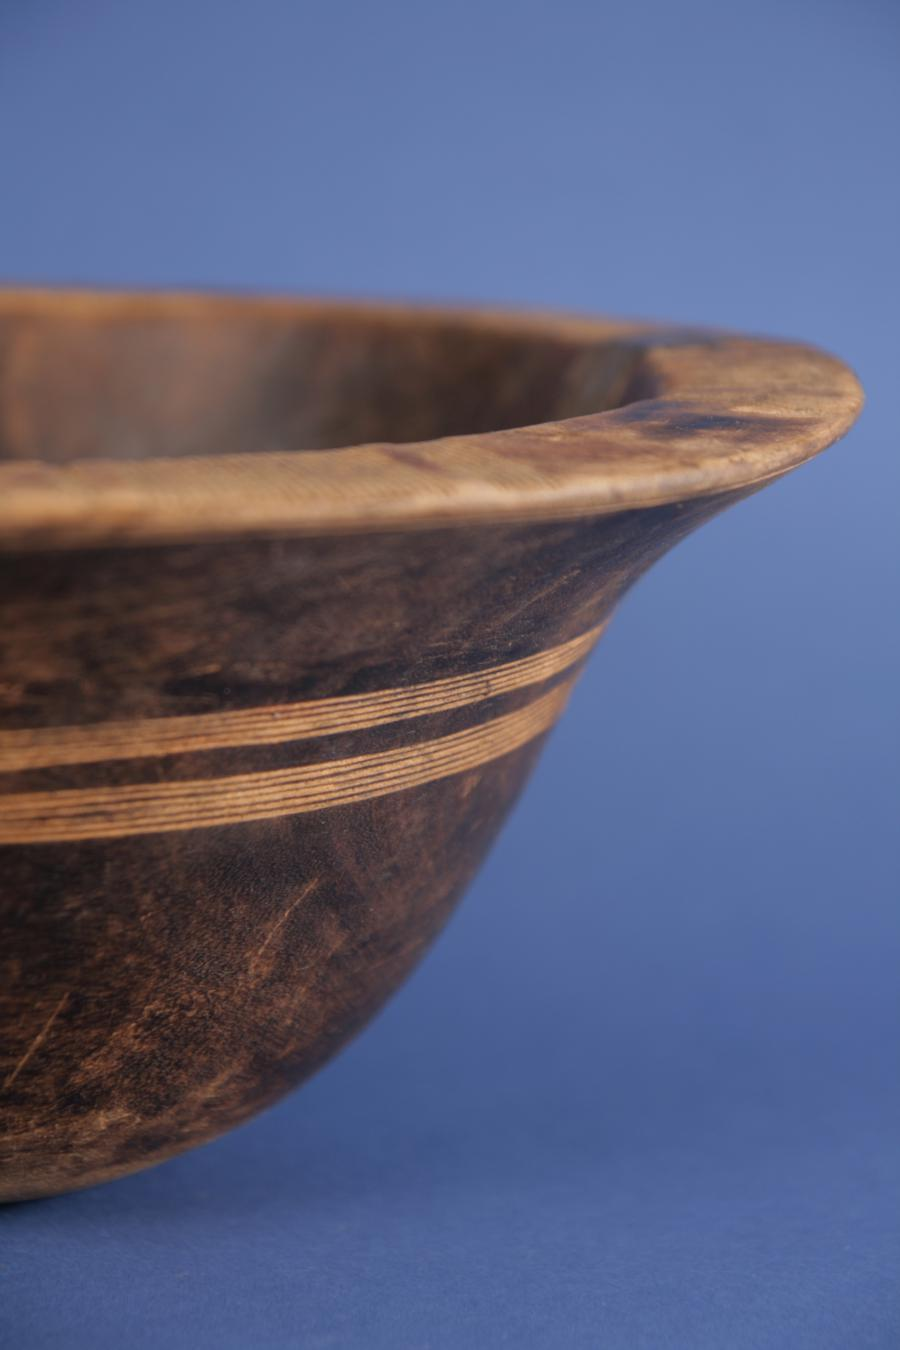 Tuareg food bowl